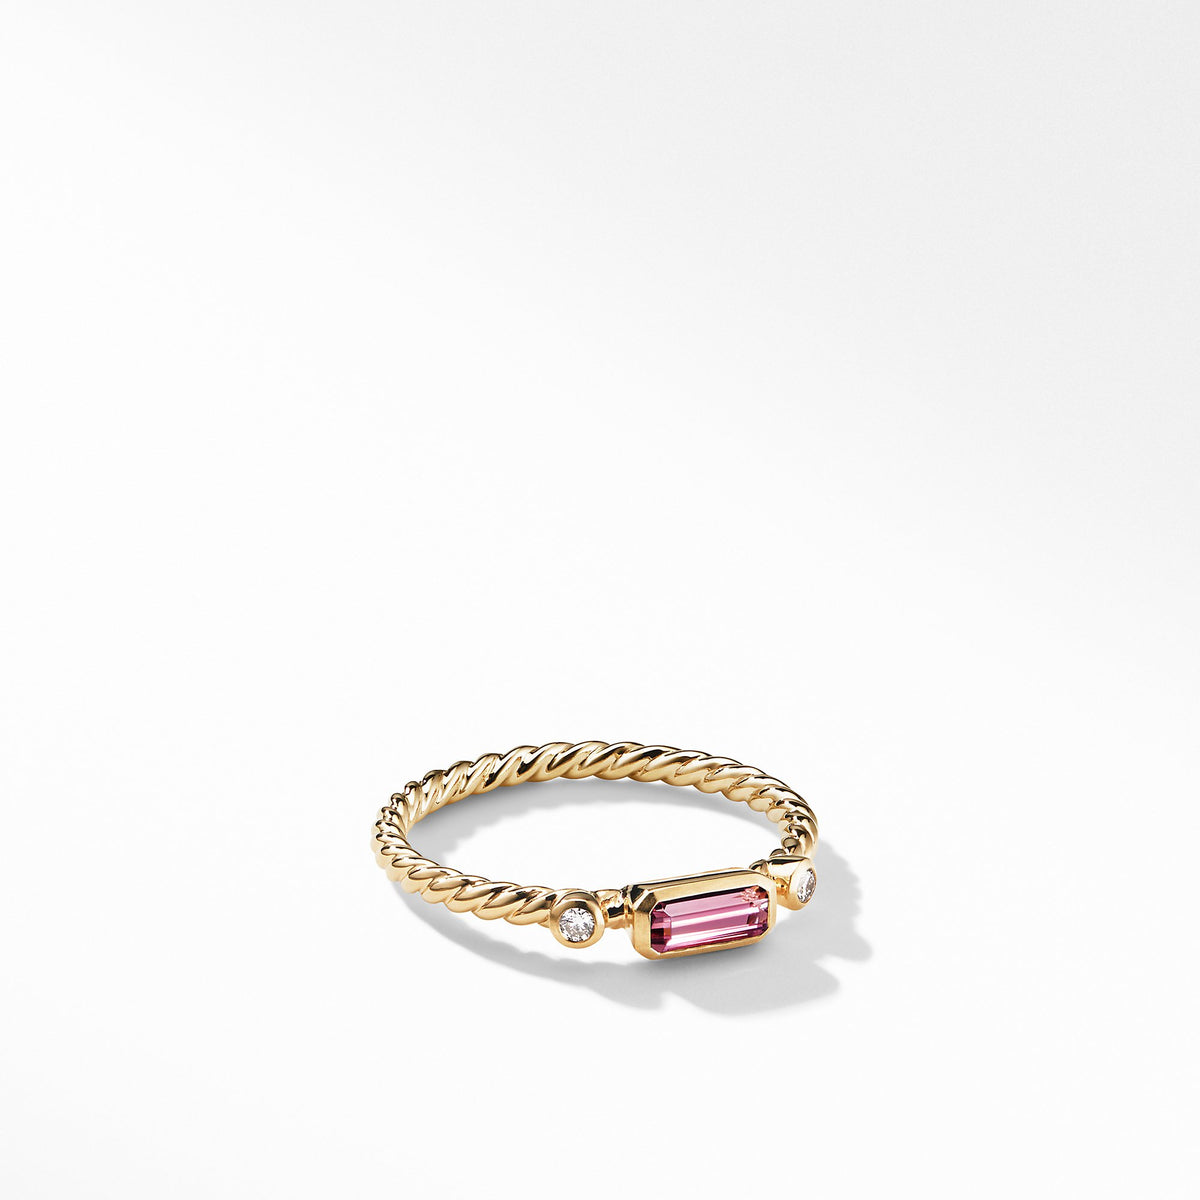 Novella Ring in Pink Tourmaline with Diamonds